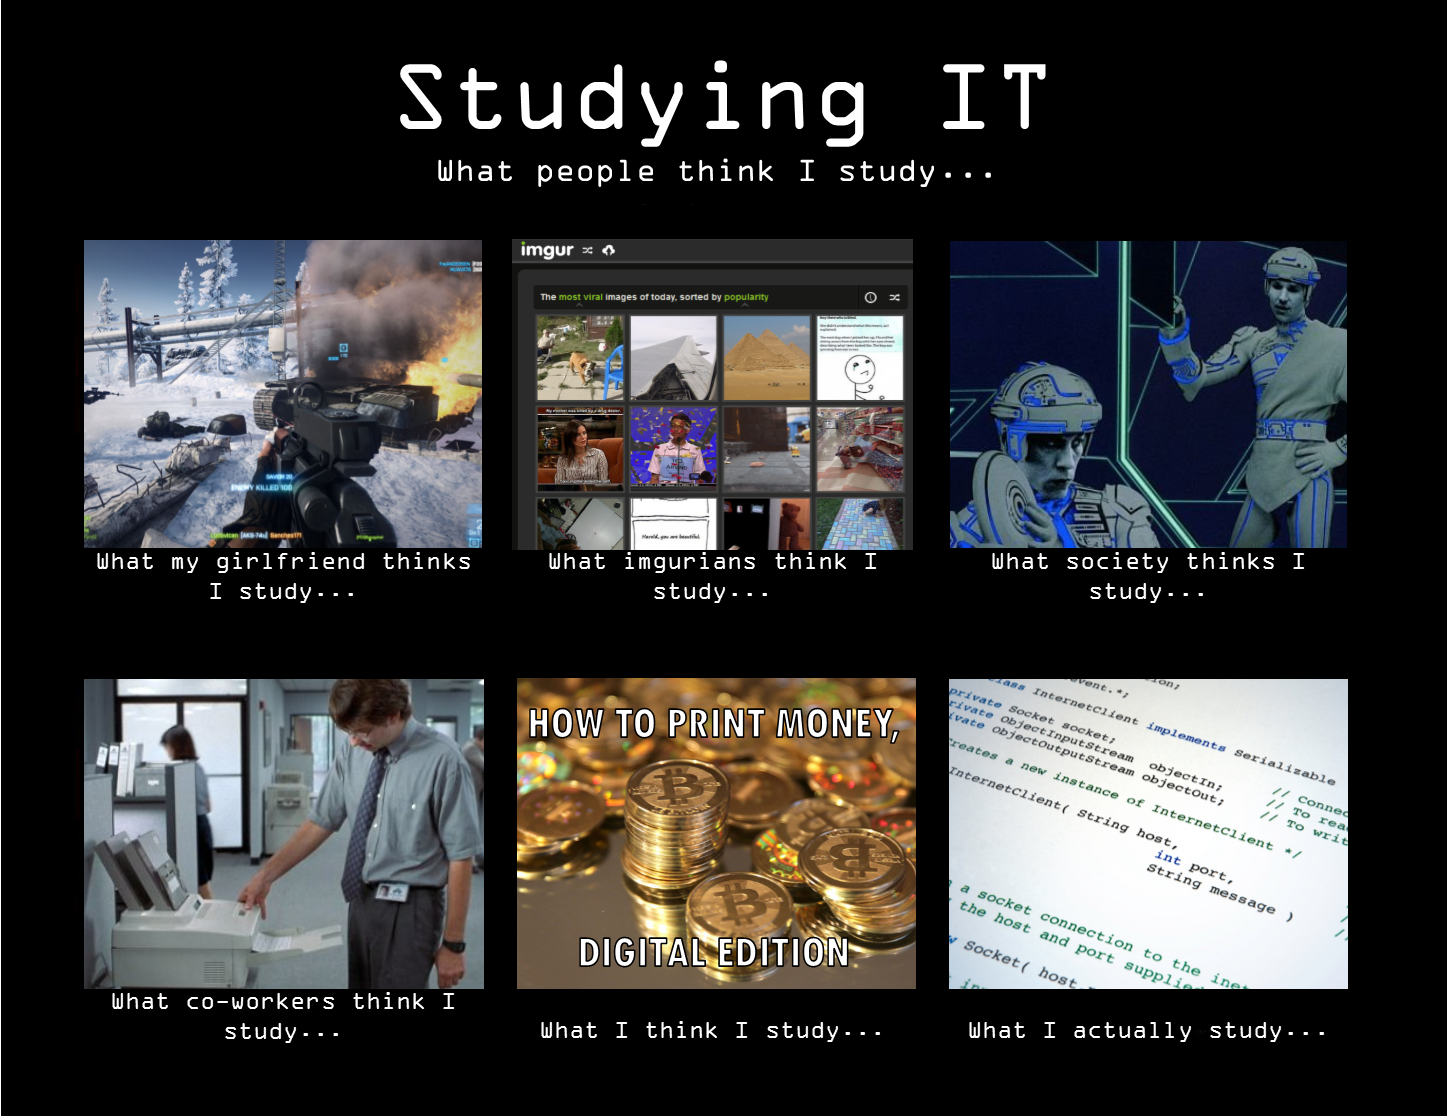 Funny Memes For Studying : Funny picture studuing it